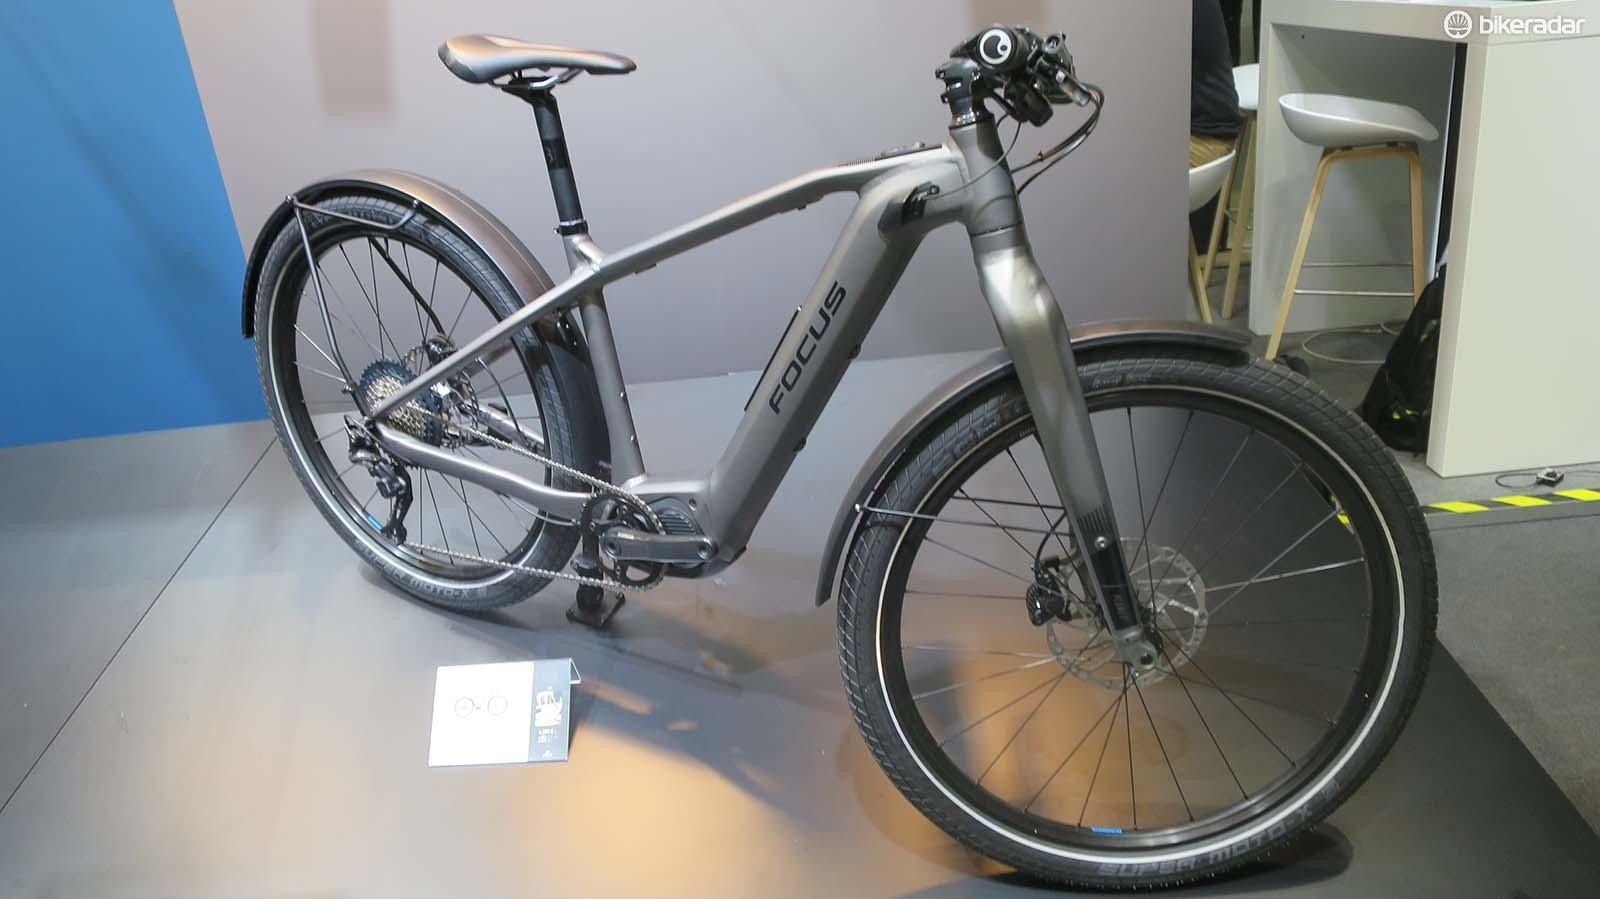 The Planet 9.8 is Focus's premium e-commuter